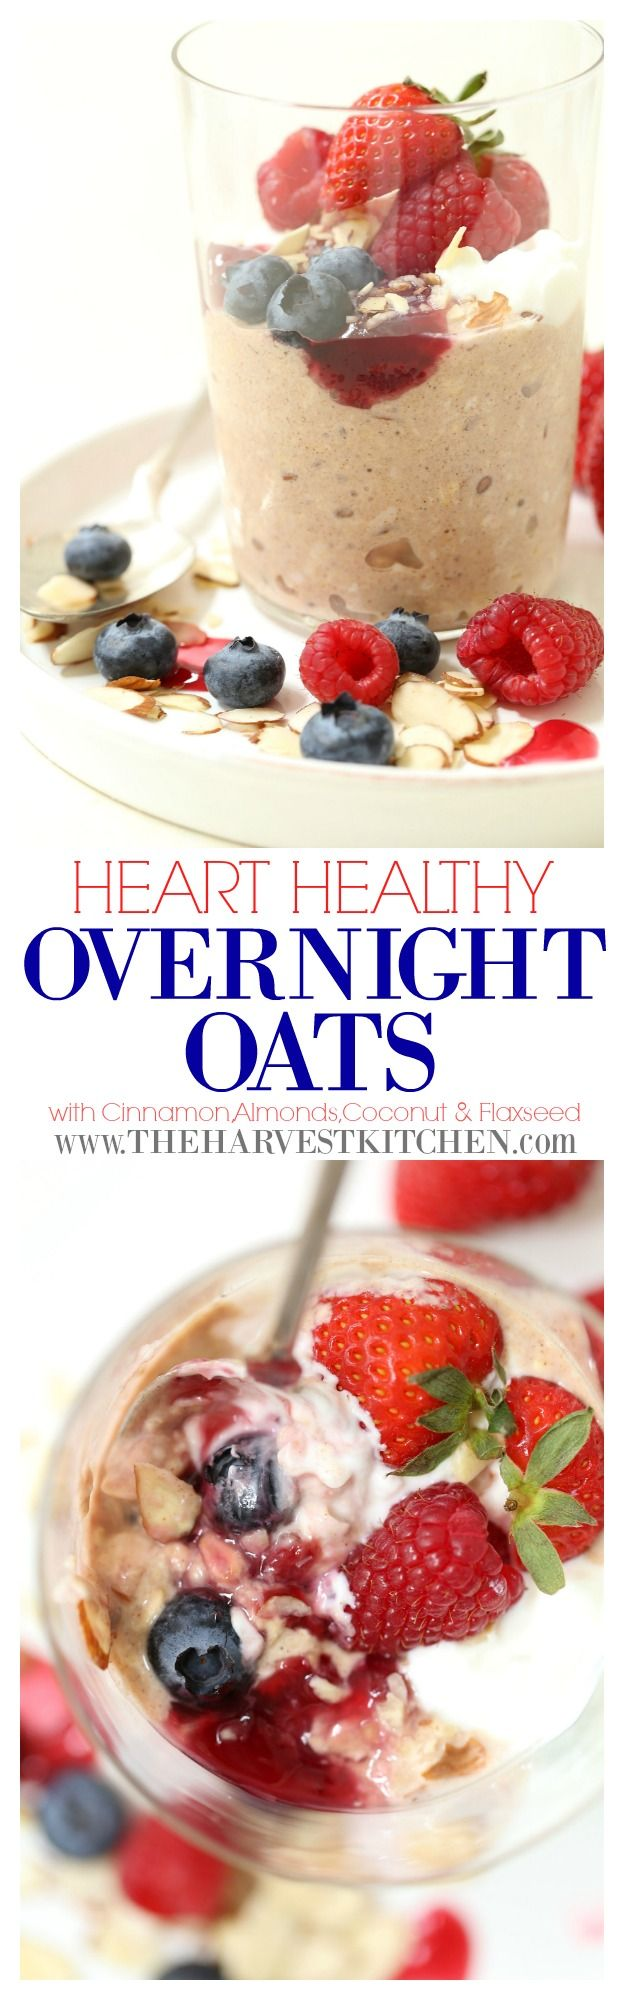 These Heart Healthy Overnight Oats are the quintessential healthy breakfast. They're a healthy and satisfying combination of rolled oats, sliced almonds, flaxseeds, shredded coconut and almond milk. Oats are a power food that's rich in fiber, vitamins and minerals, offering a host of benefits for our overall health.